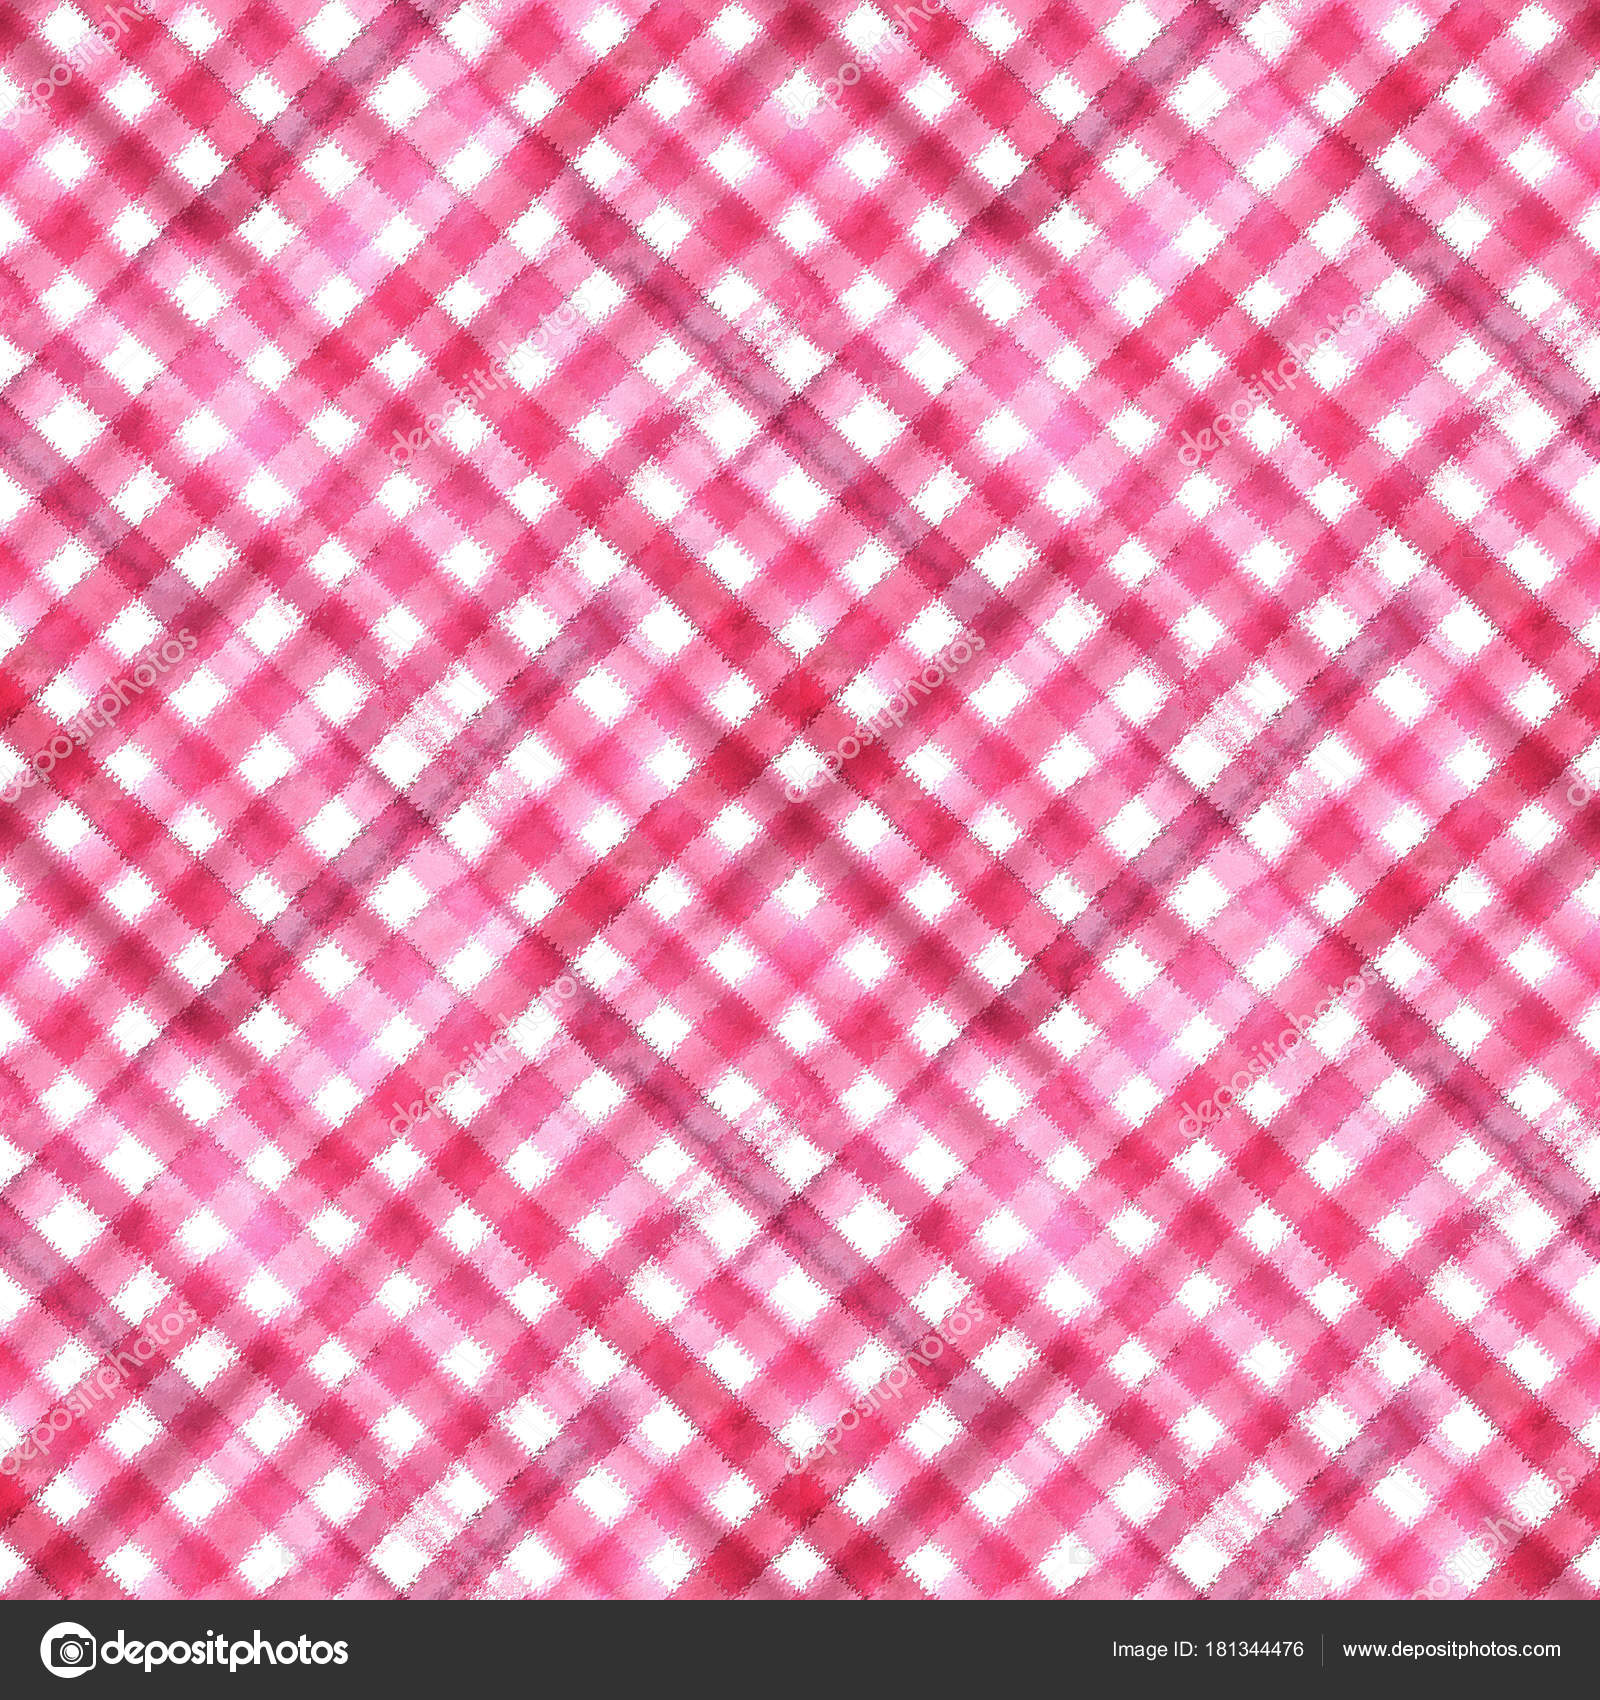 Depositphotos 181344476 Stock Photo Pink And White Plaid Background